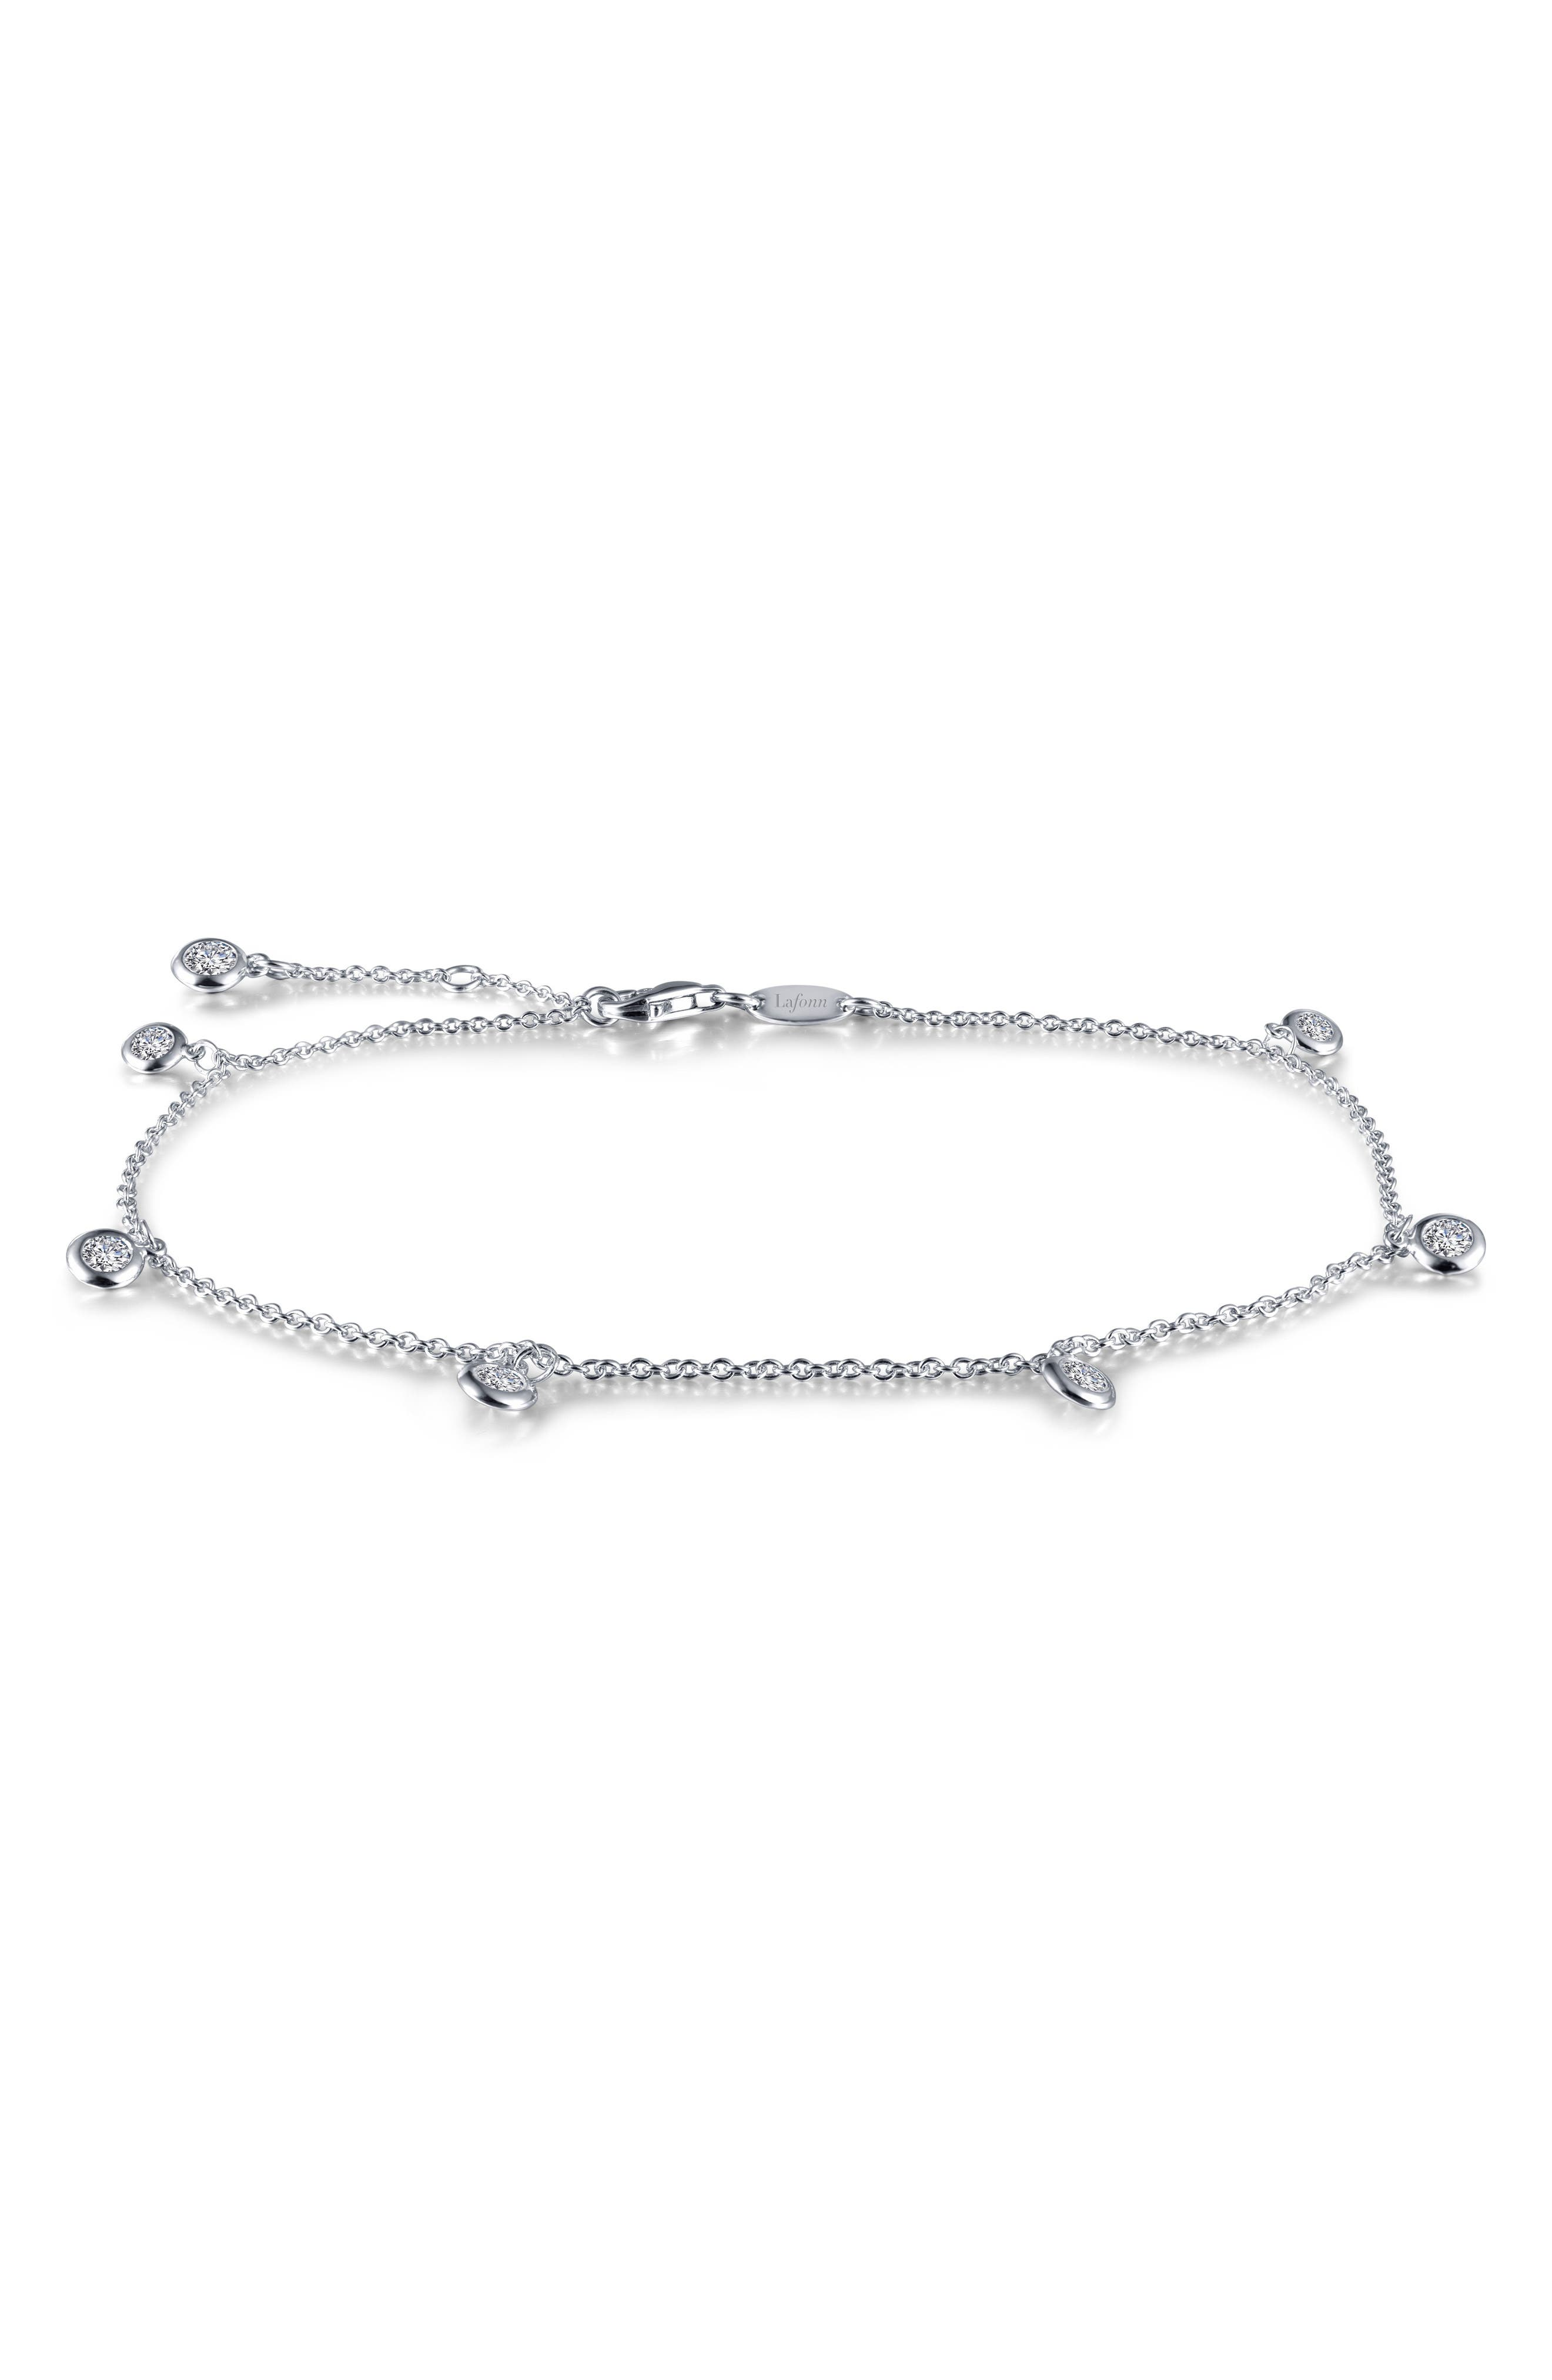 himalayan mm sterling rope ankle bracelet anklets anklet silver solid collections italian cut diamond chain gems